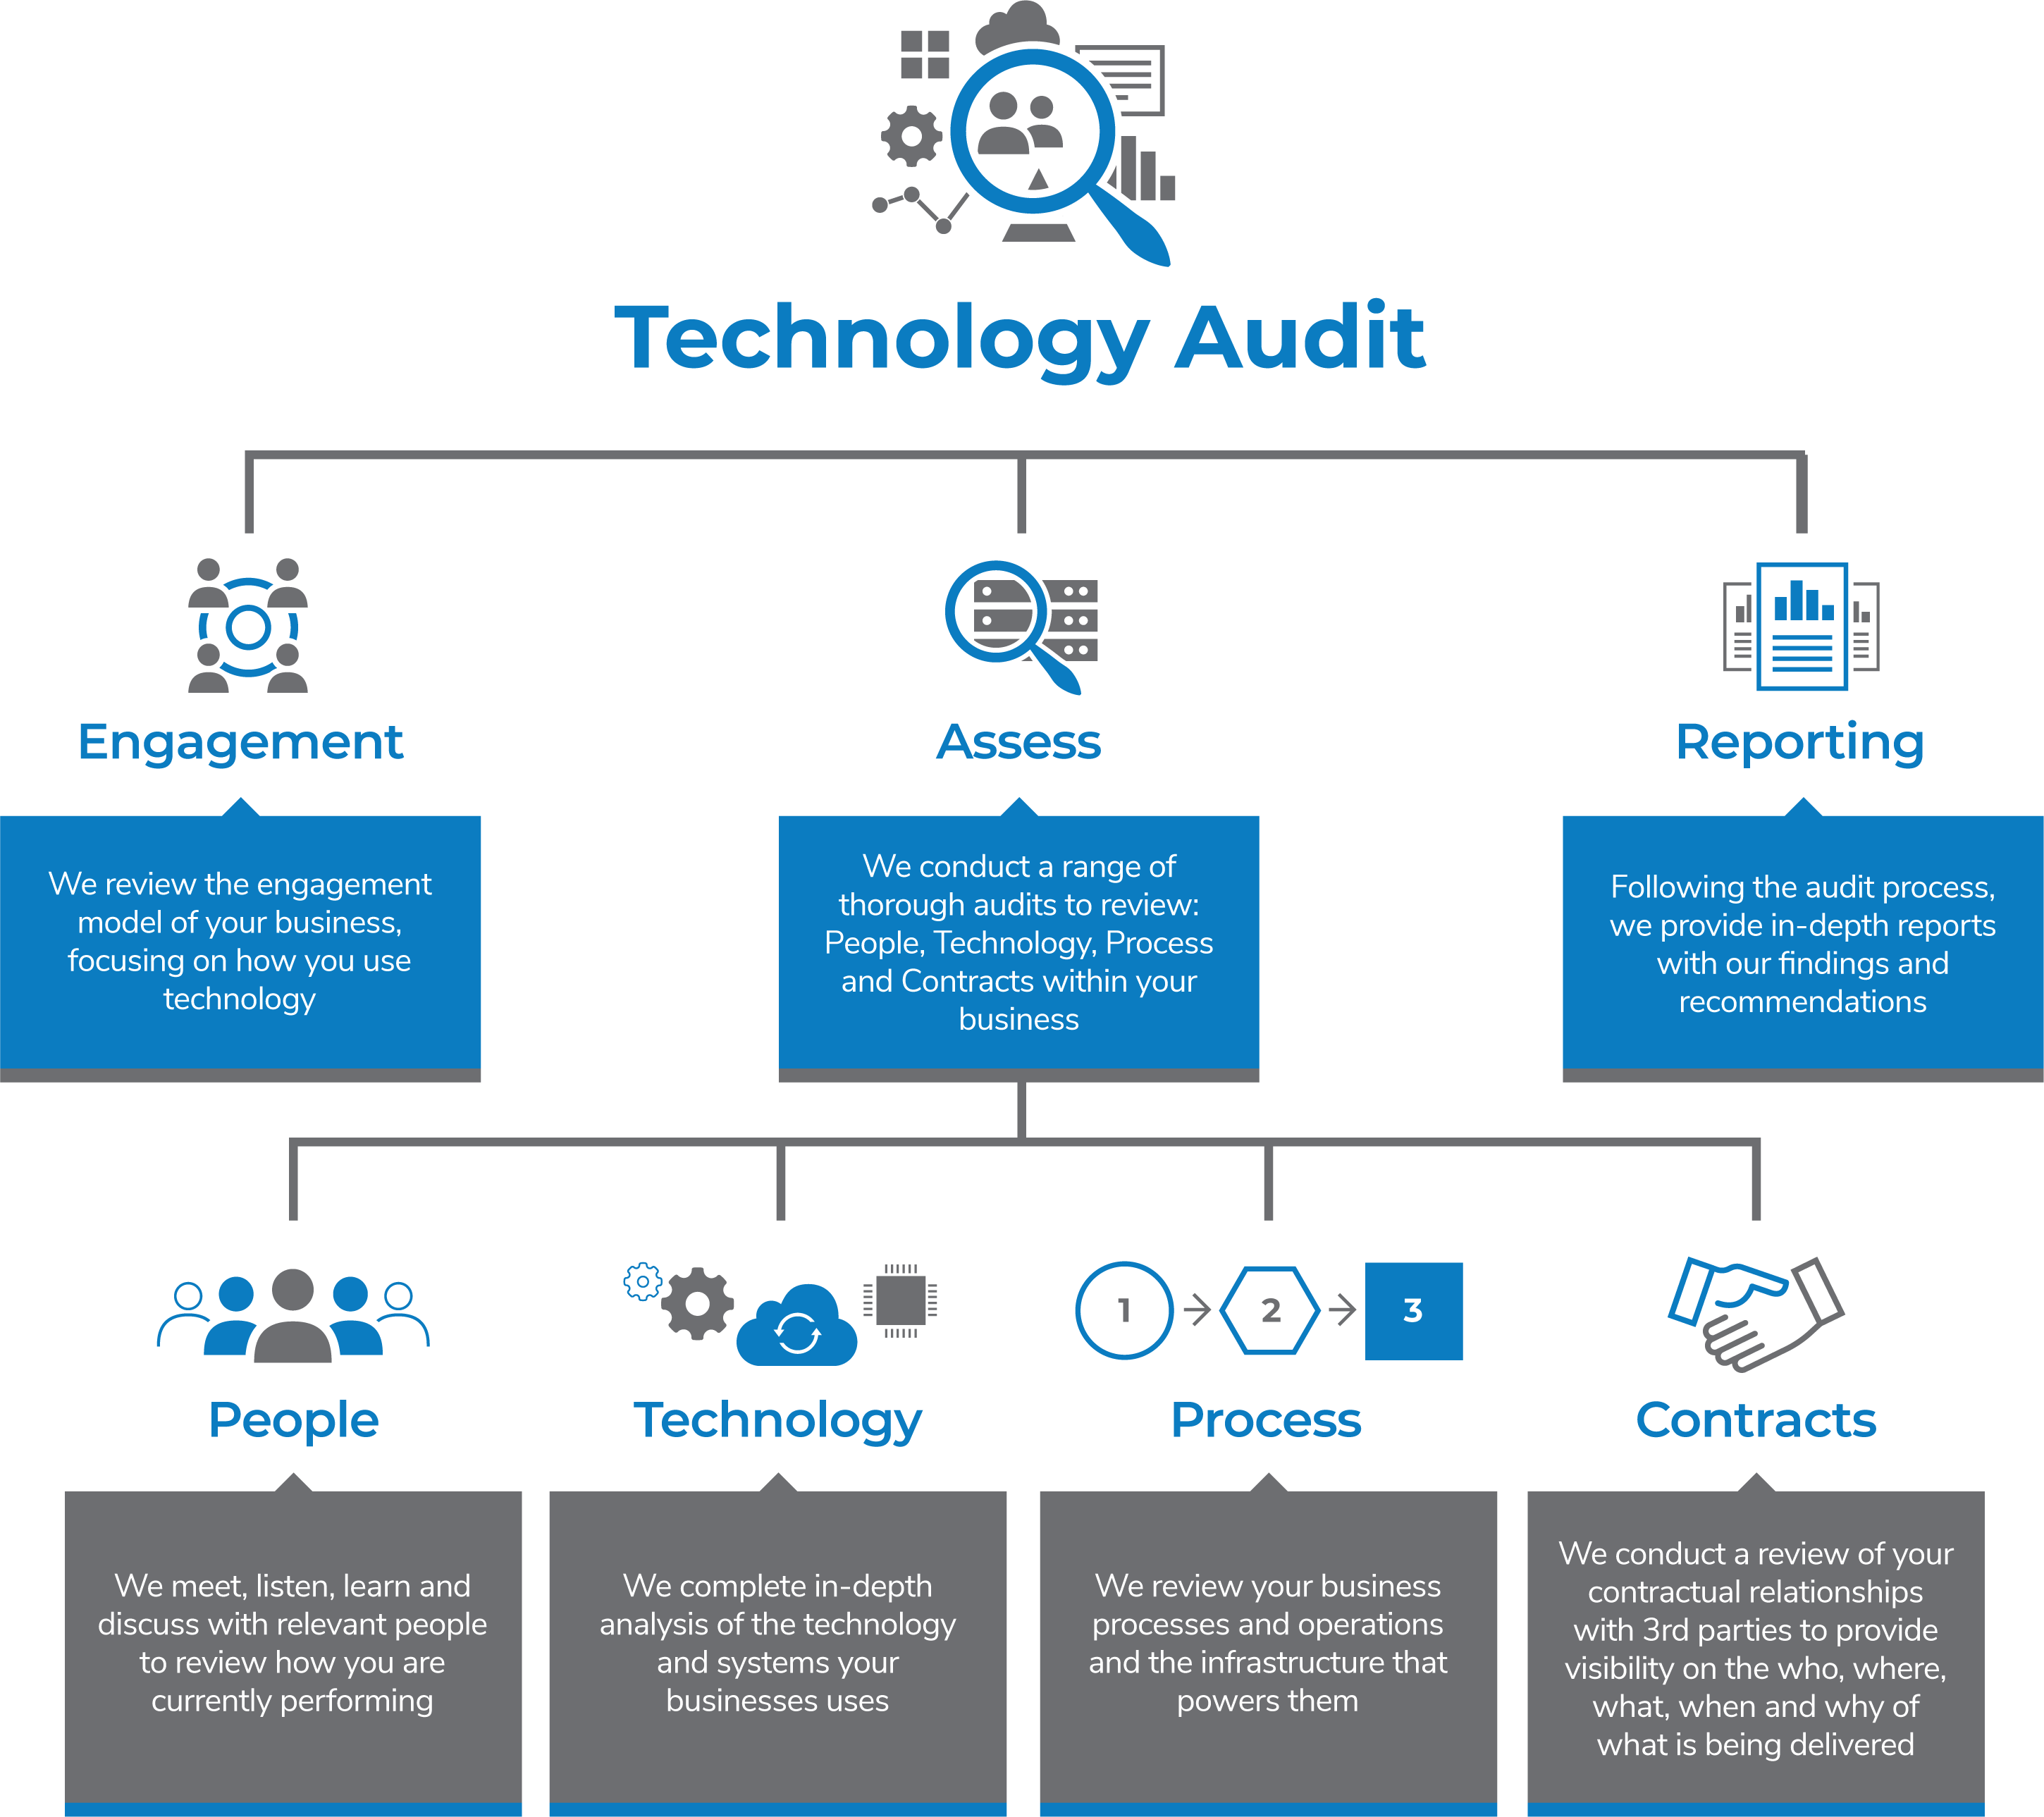 Technology Audit